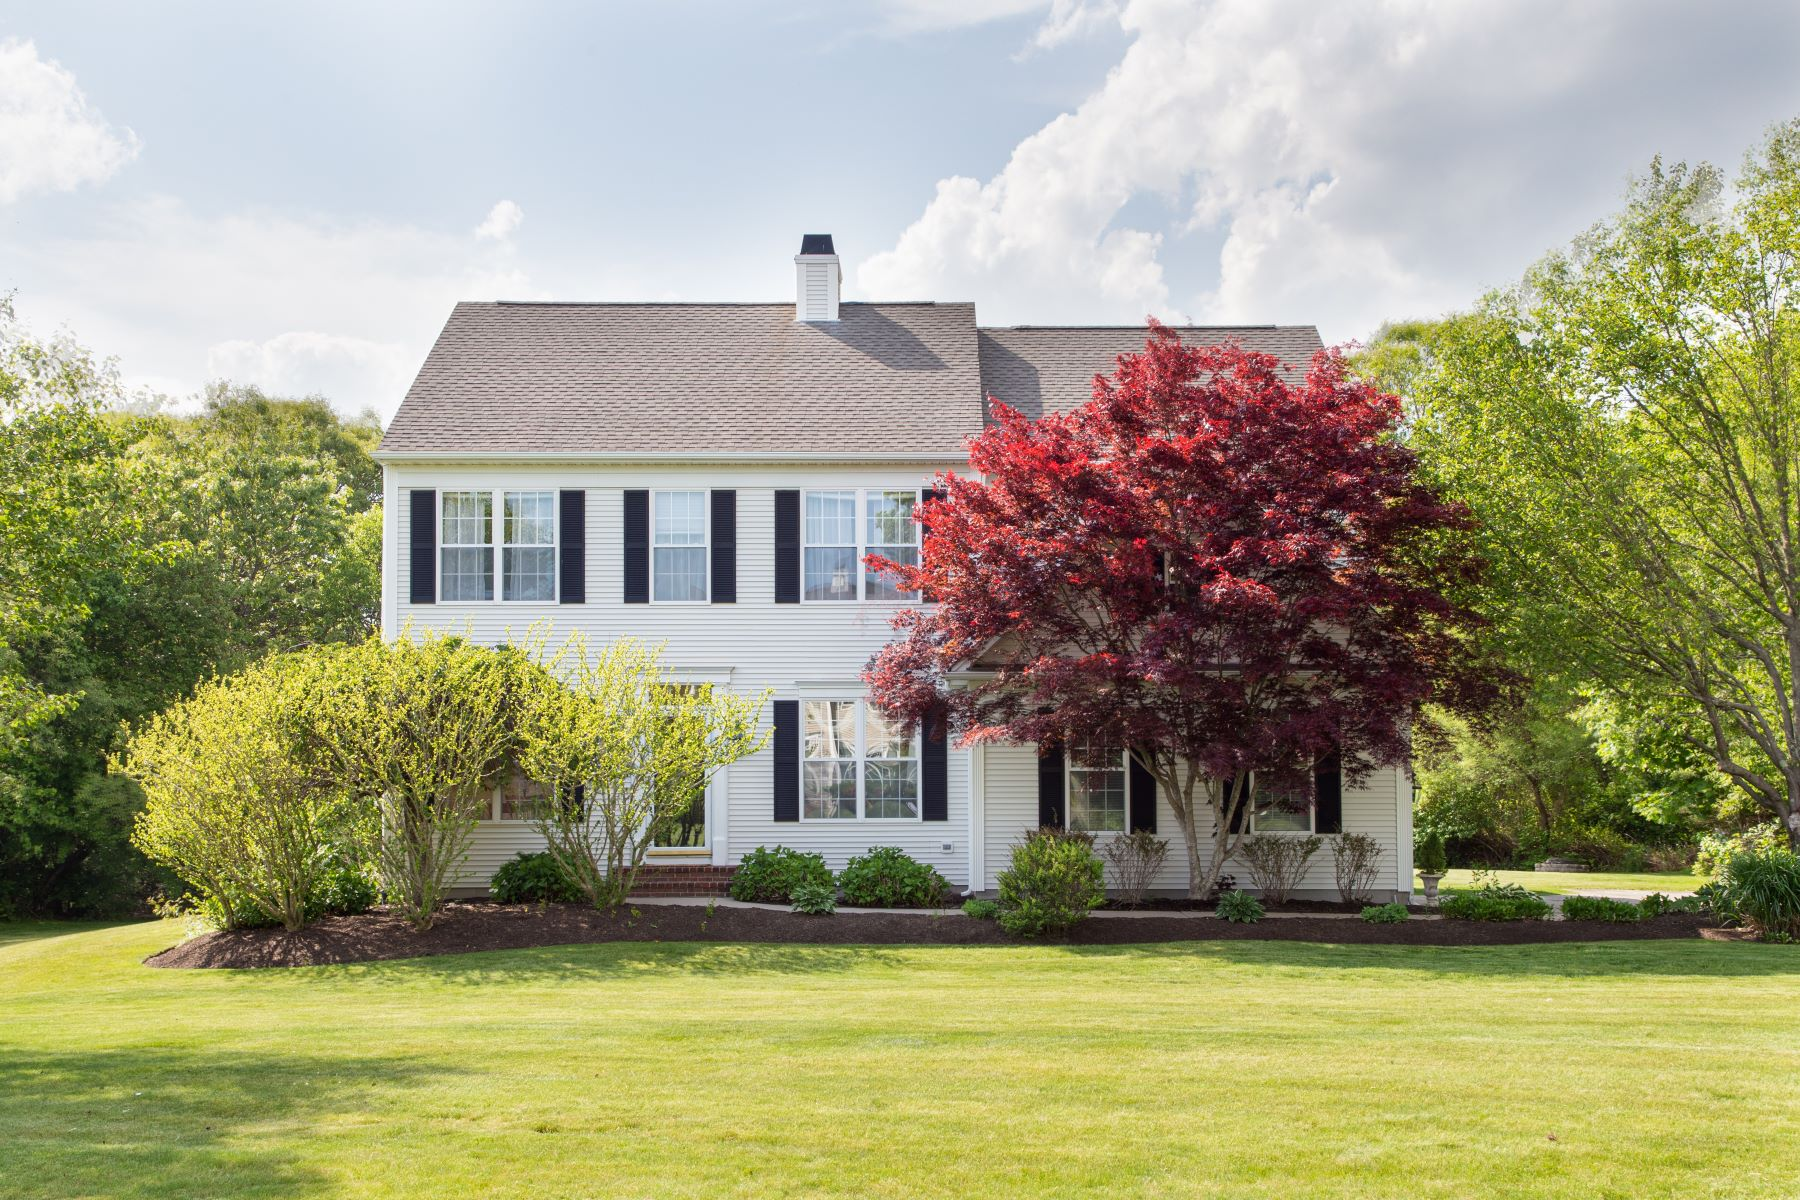 Single Family Homes for Sale at 64 Day Lily Circle, South Kingstown, RI South Kingstown, Rhode Island 02879 United States